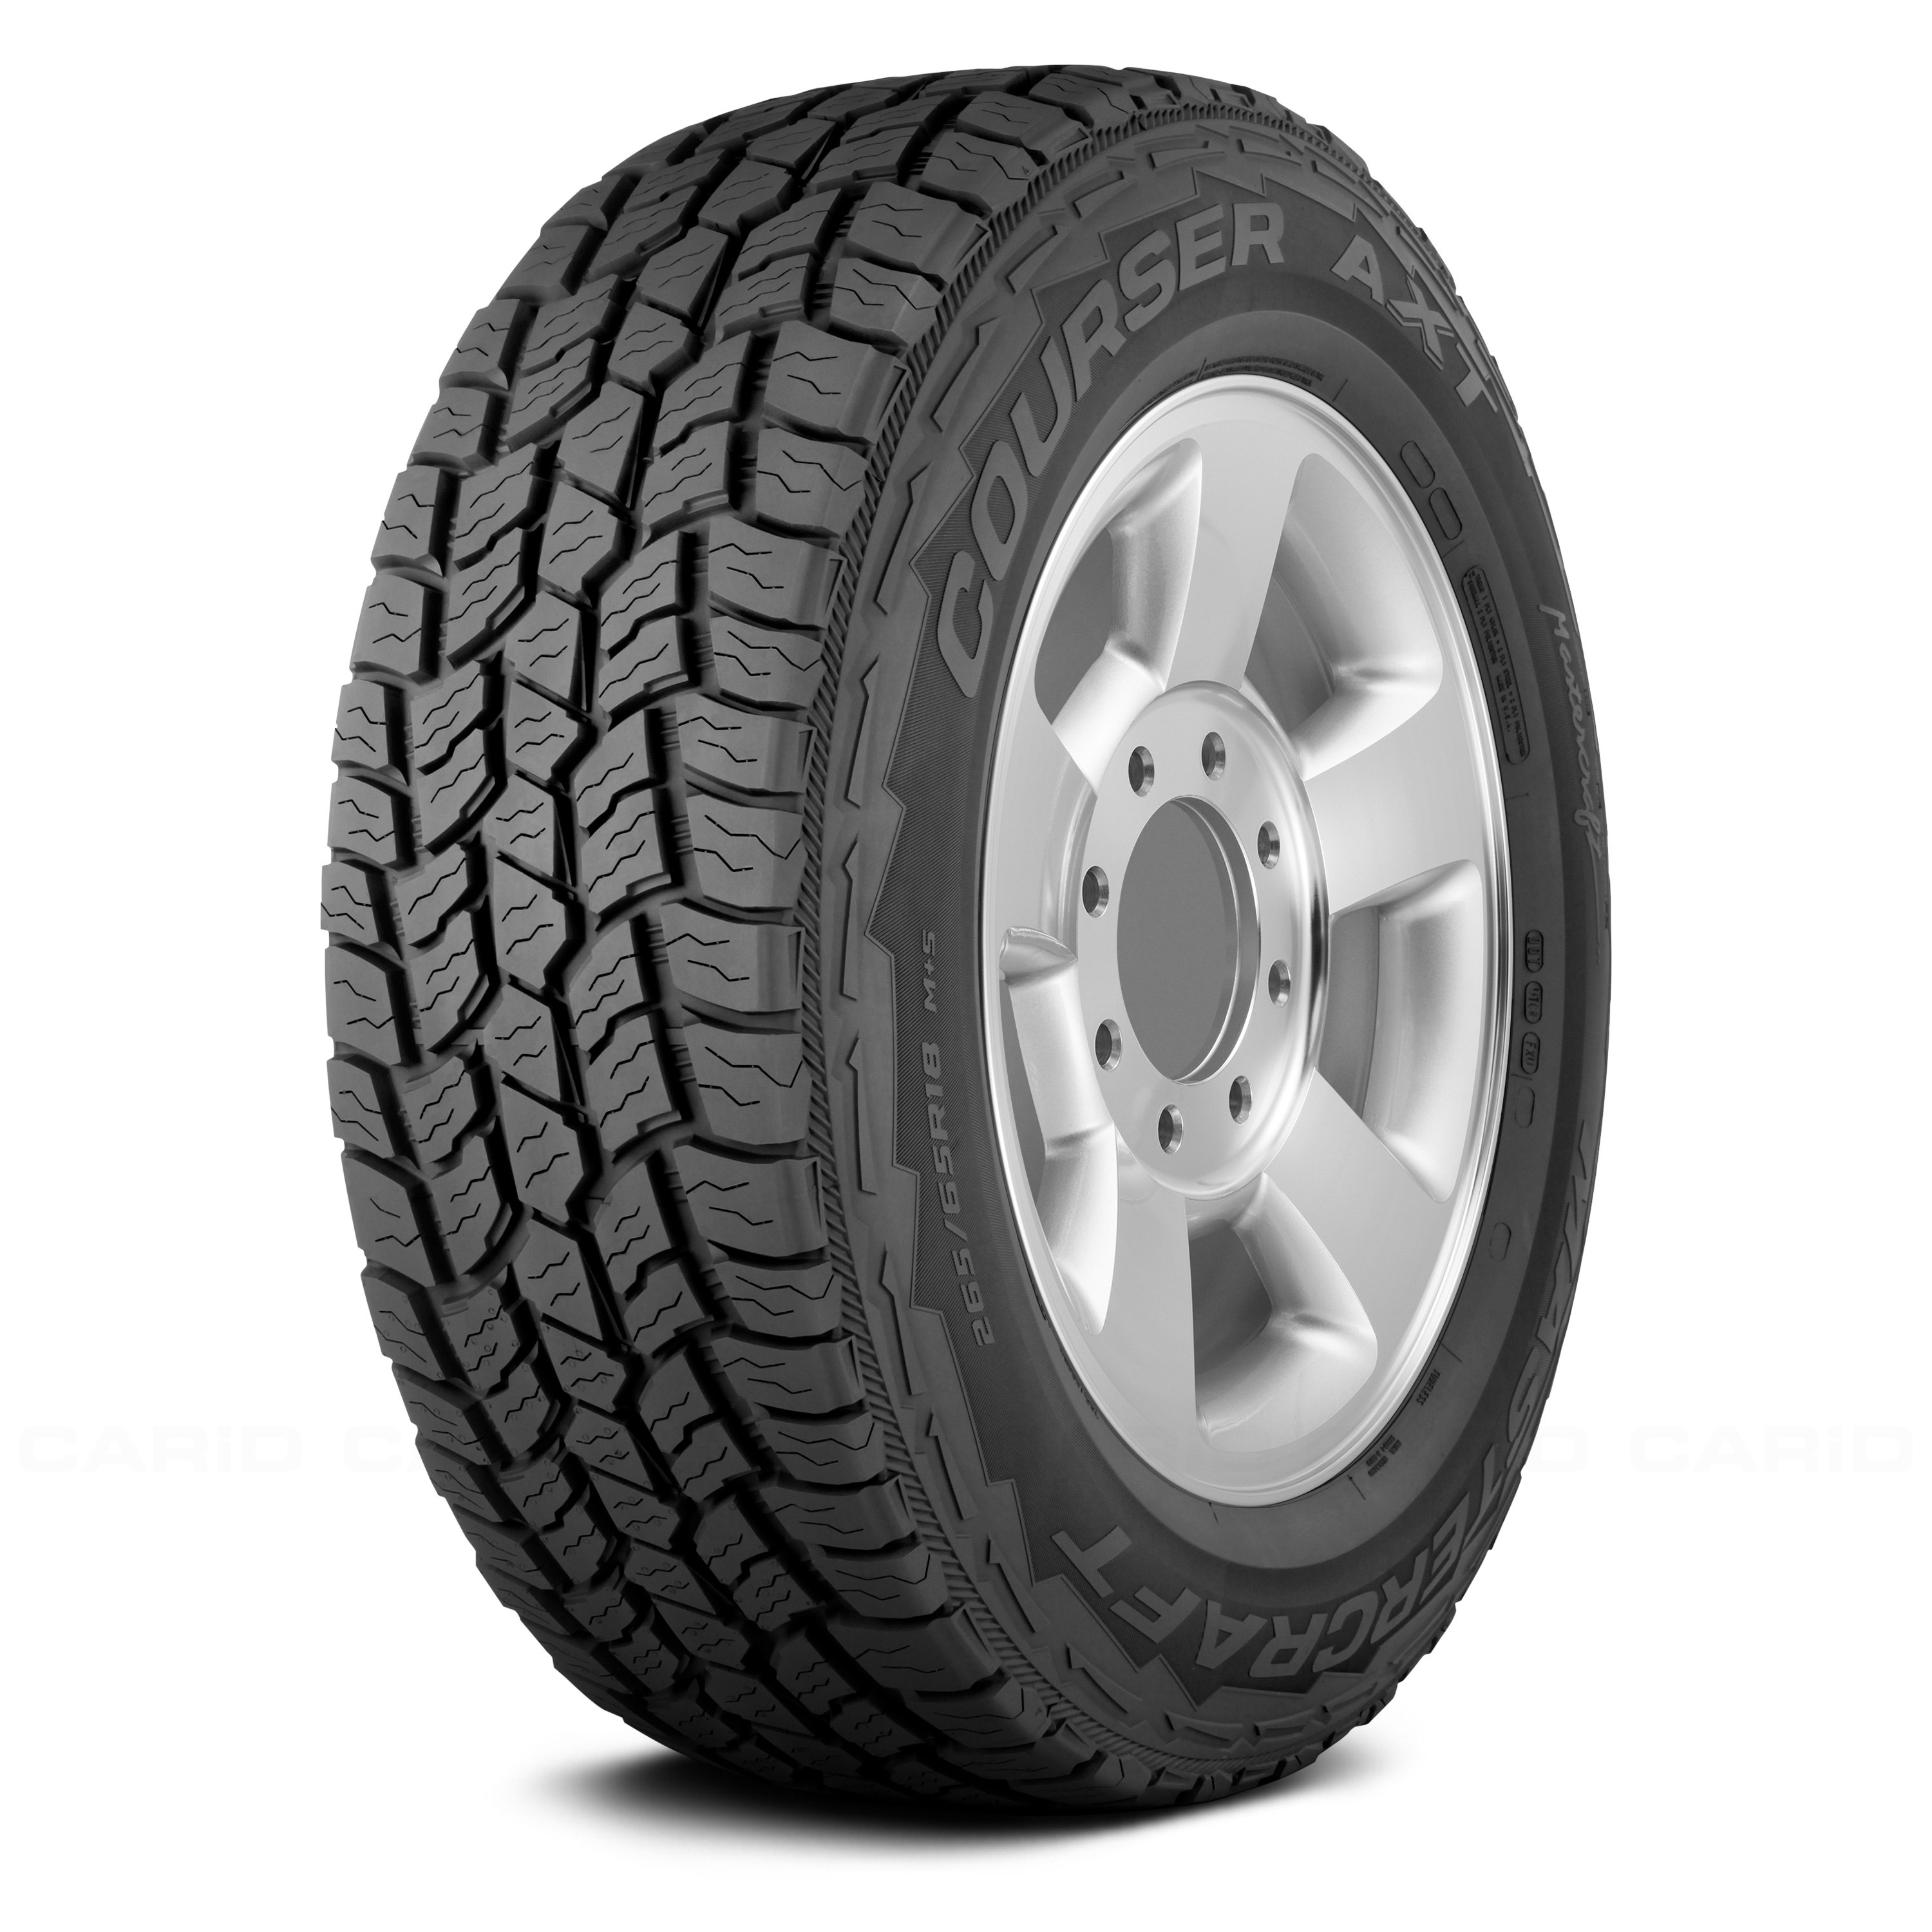 Mastercraft Tire 235 75r15 T Courser Axt All Terrain Off Road